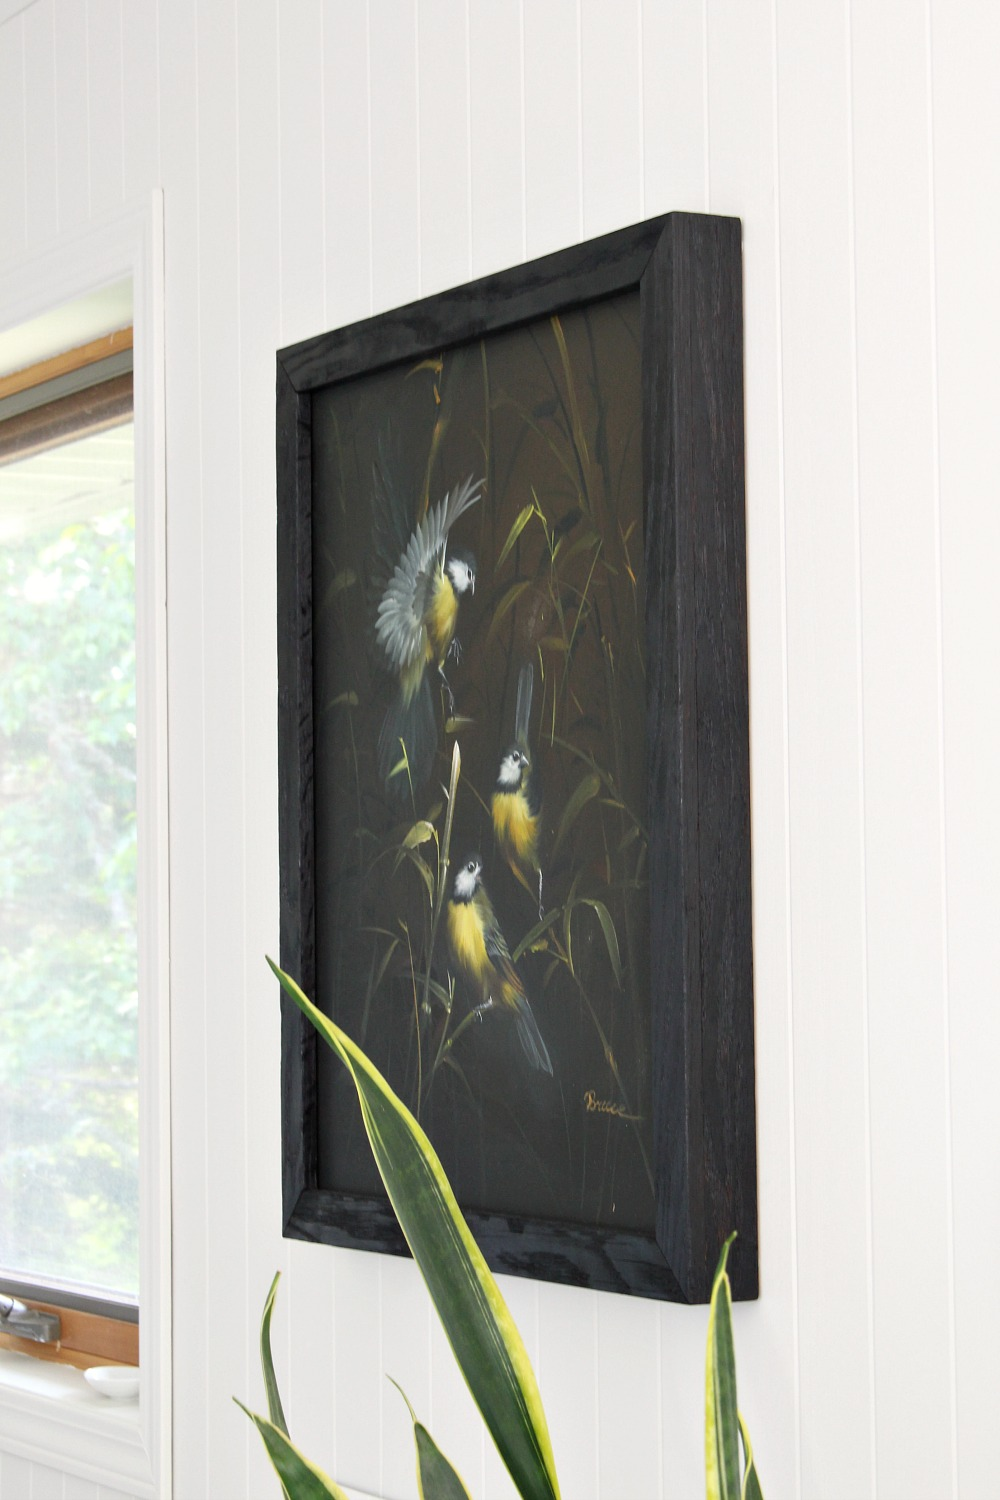 Black Charred Wood Burning Projects